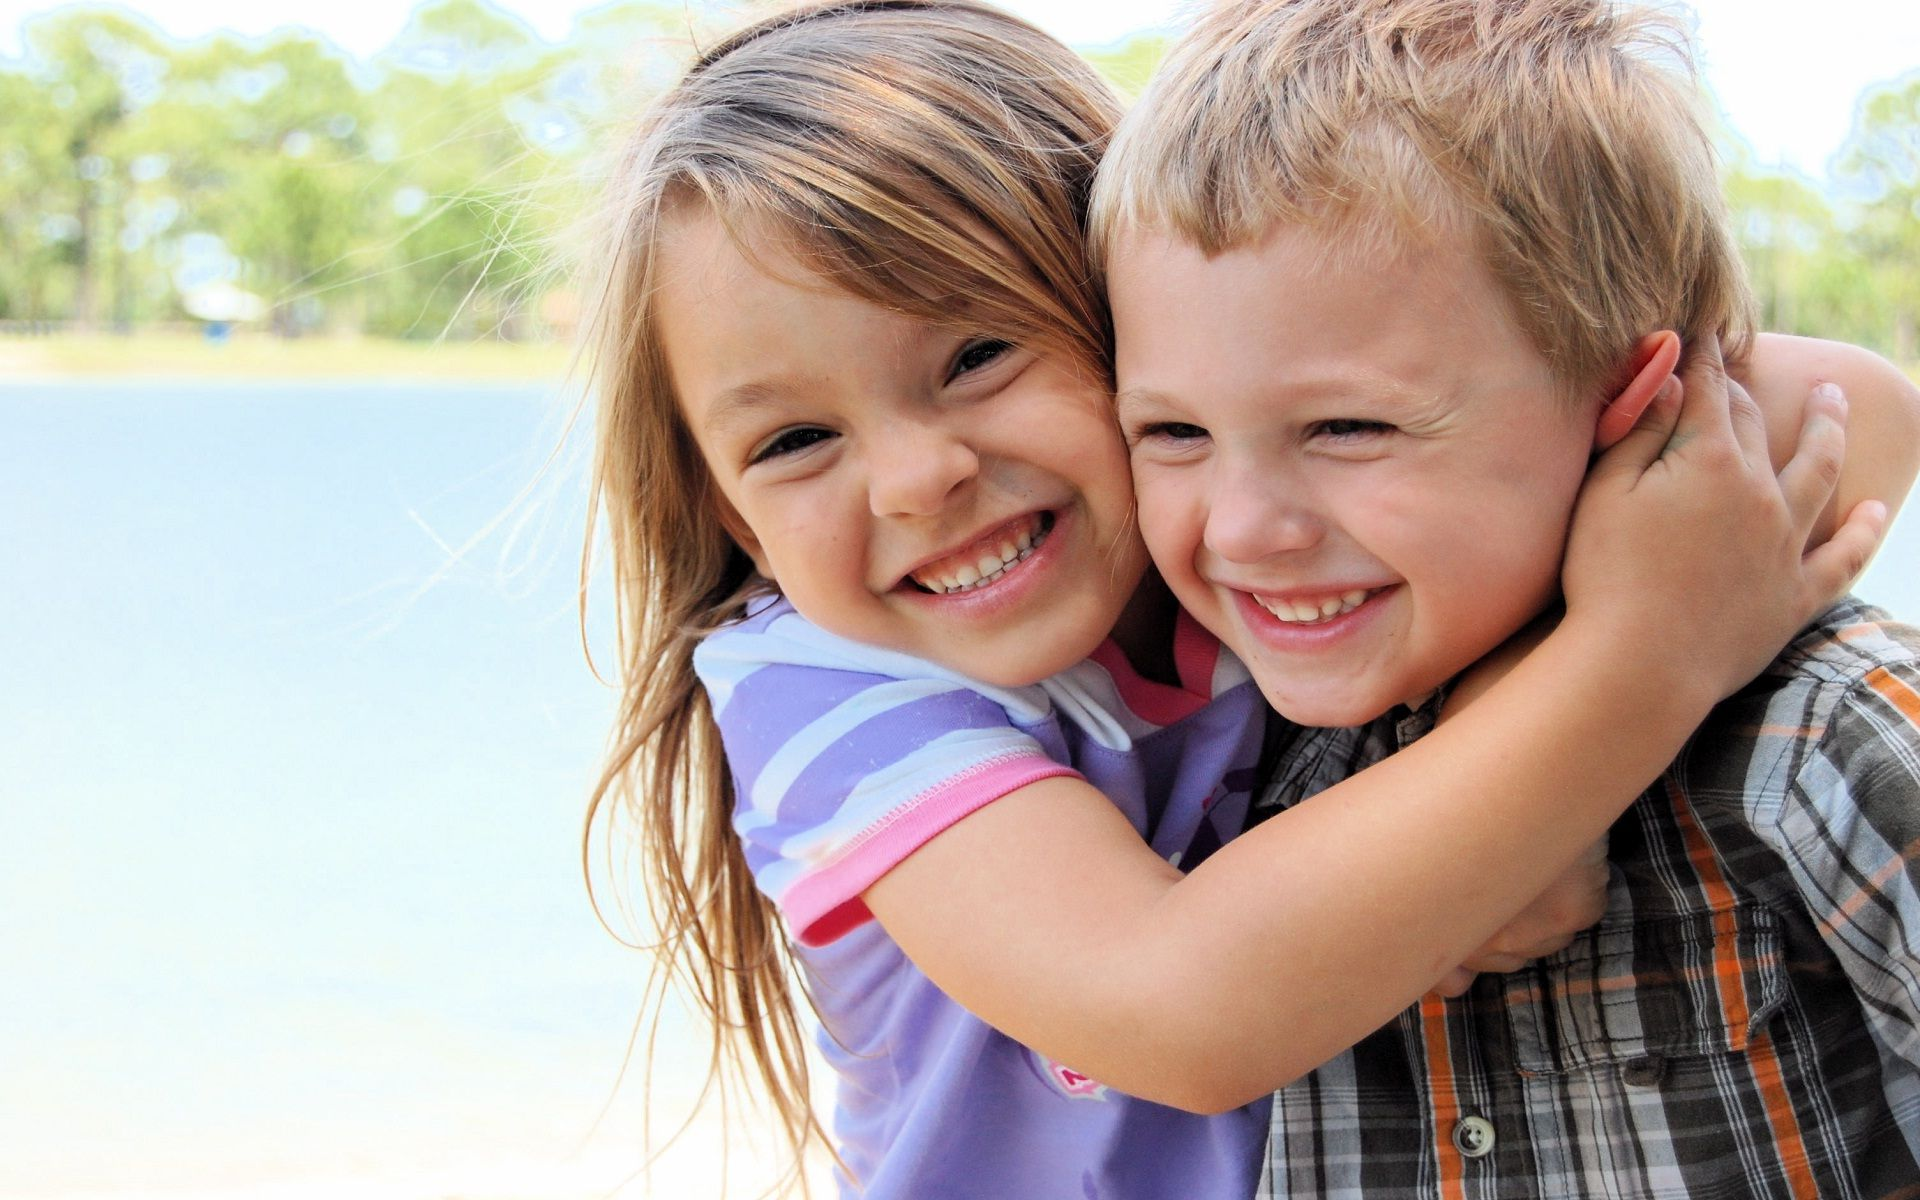 cute kids couple hug and fun | hd wallpapers rocks | android